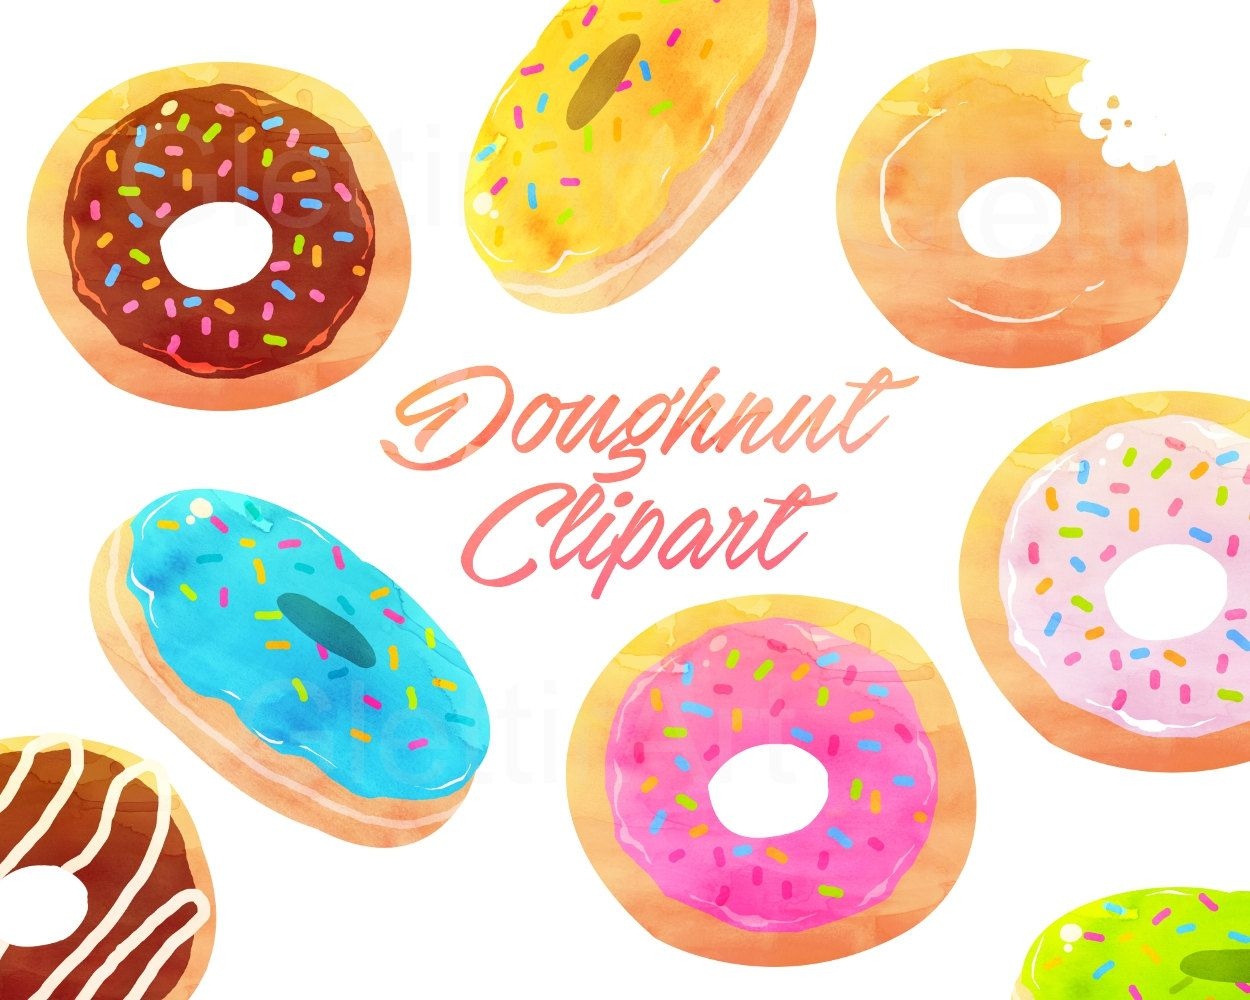 small resolution of donut clipart doughnut clipart dessert clipart for personal and commercial use instant download scrapbooking planner stickers by glettirart on etsy